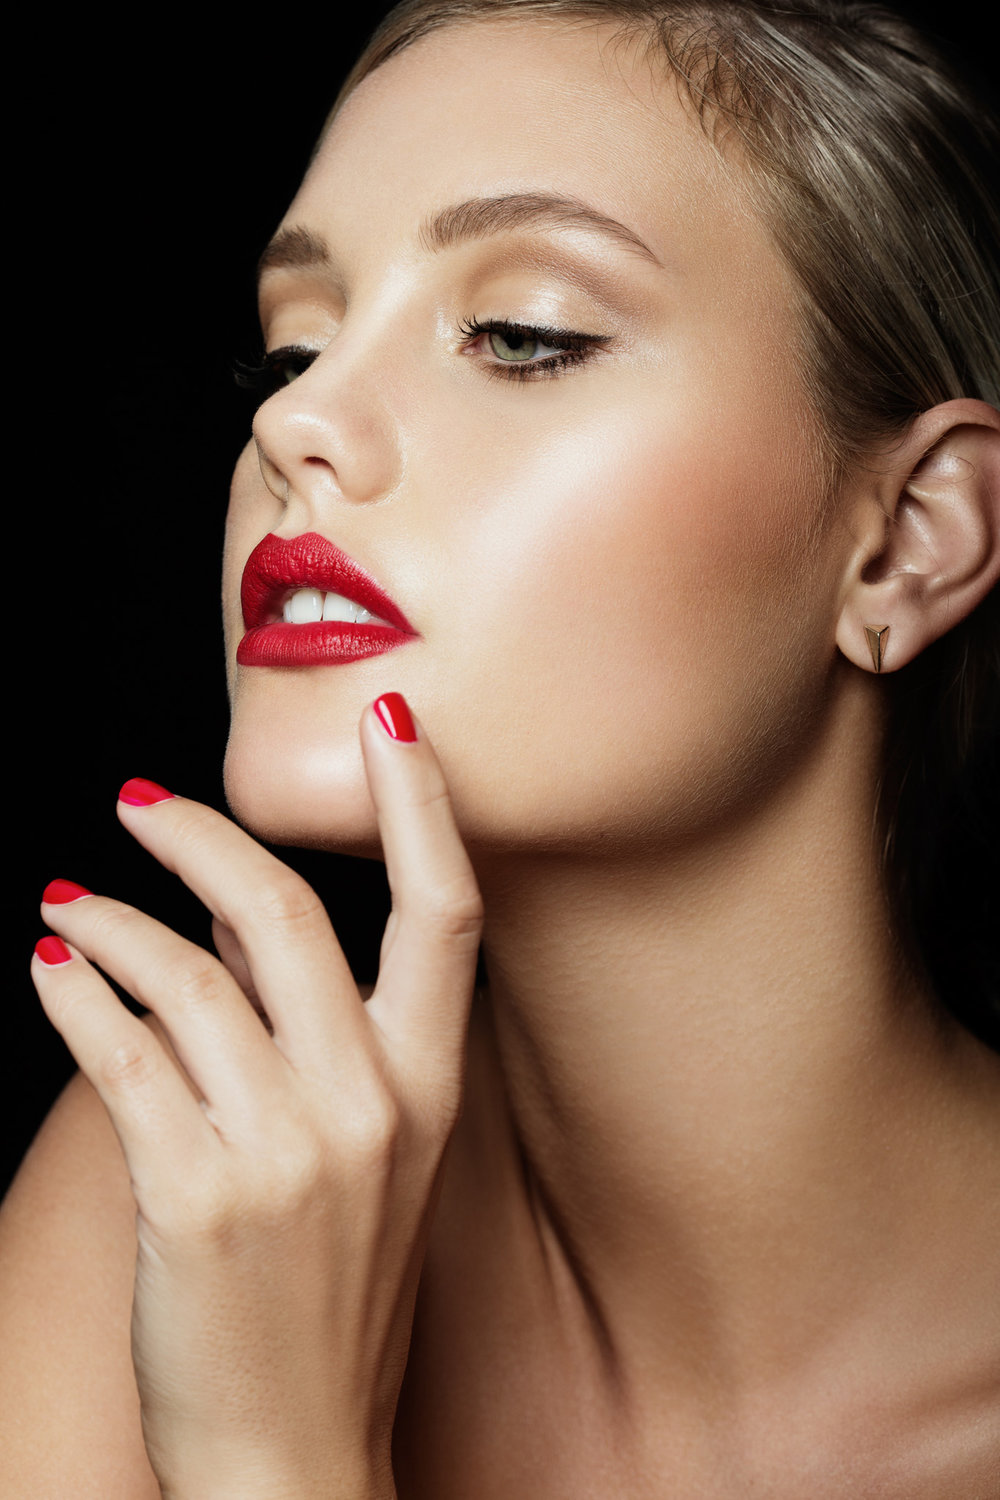 Beauty Makeup for lipstick campaign